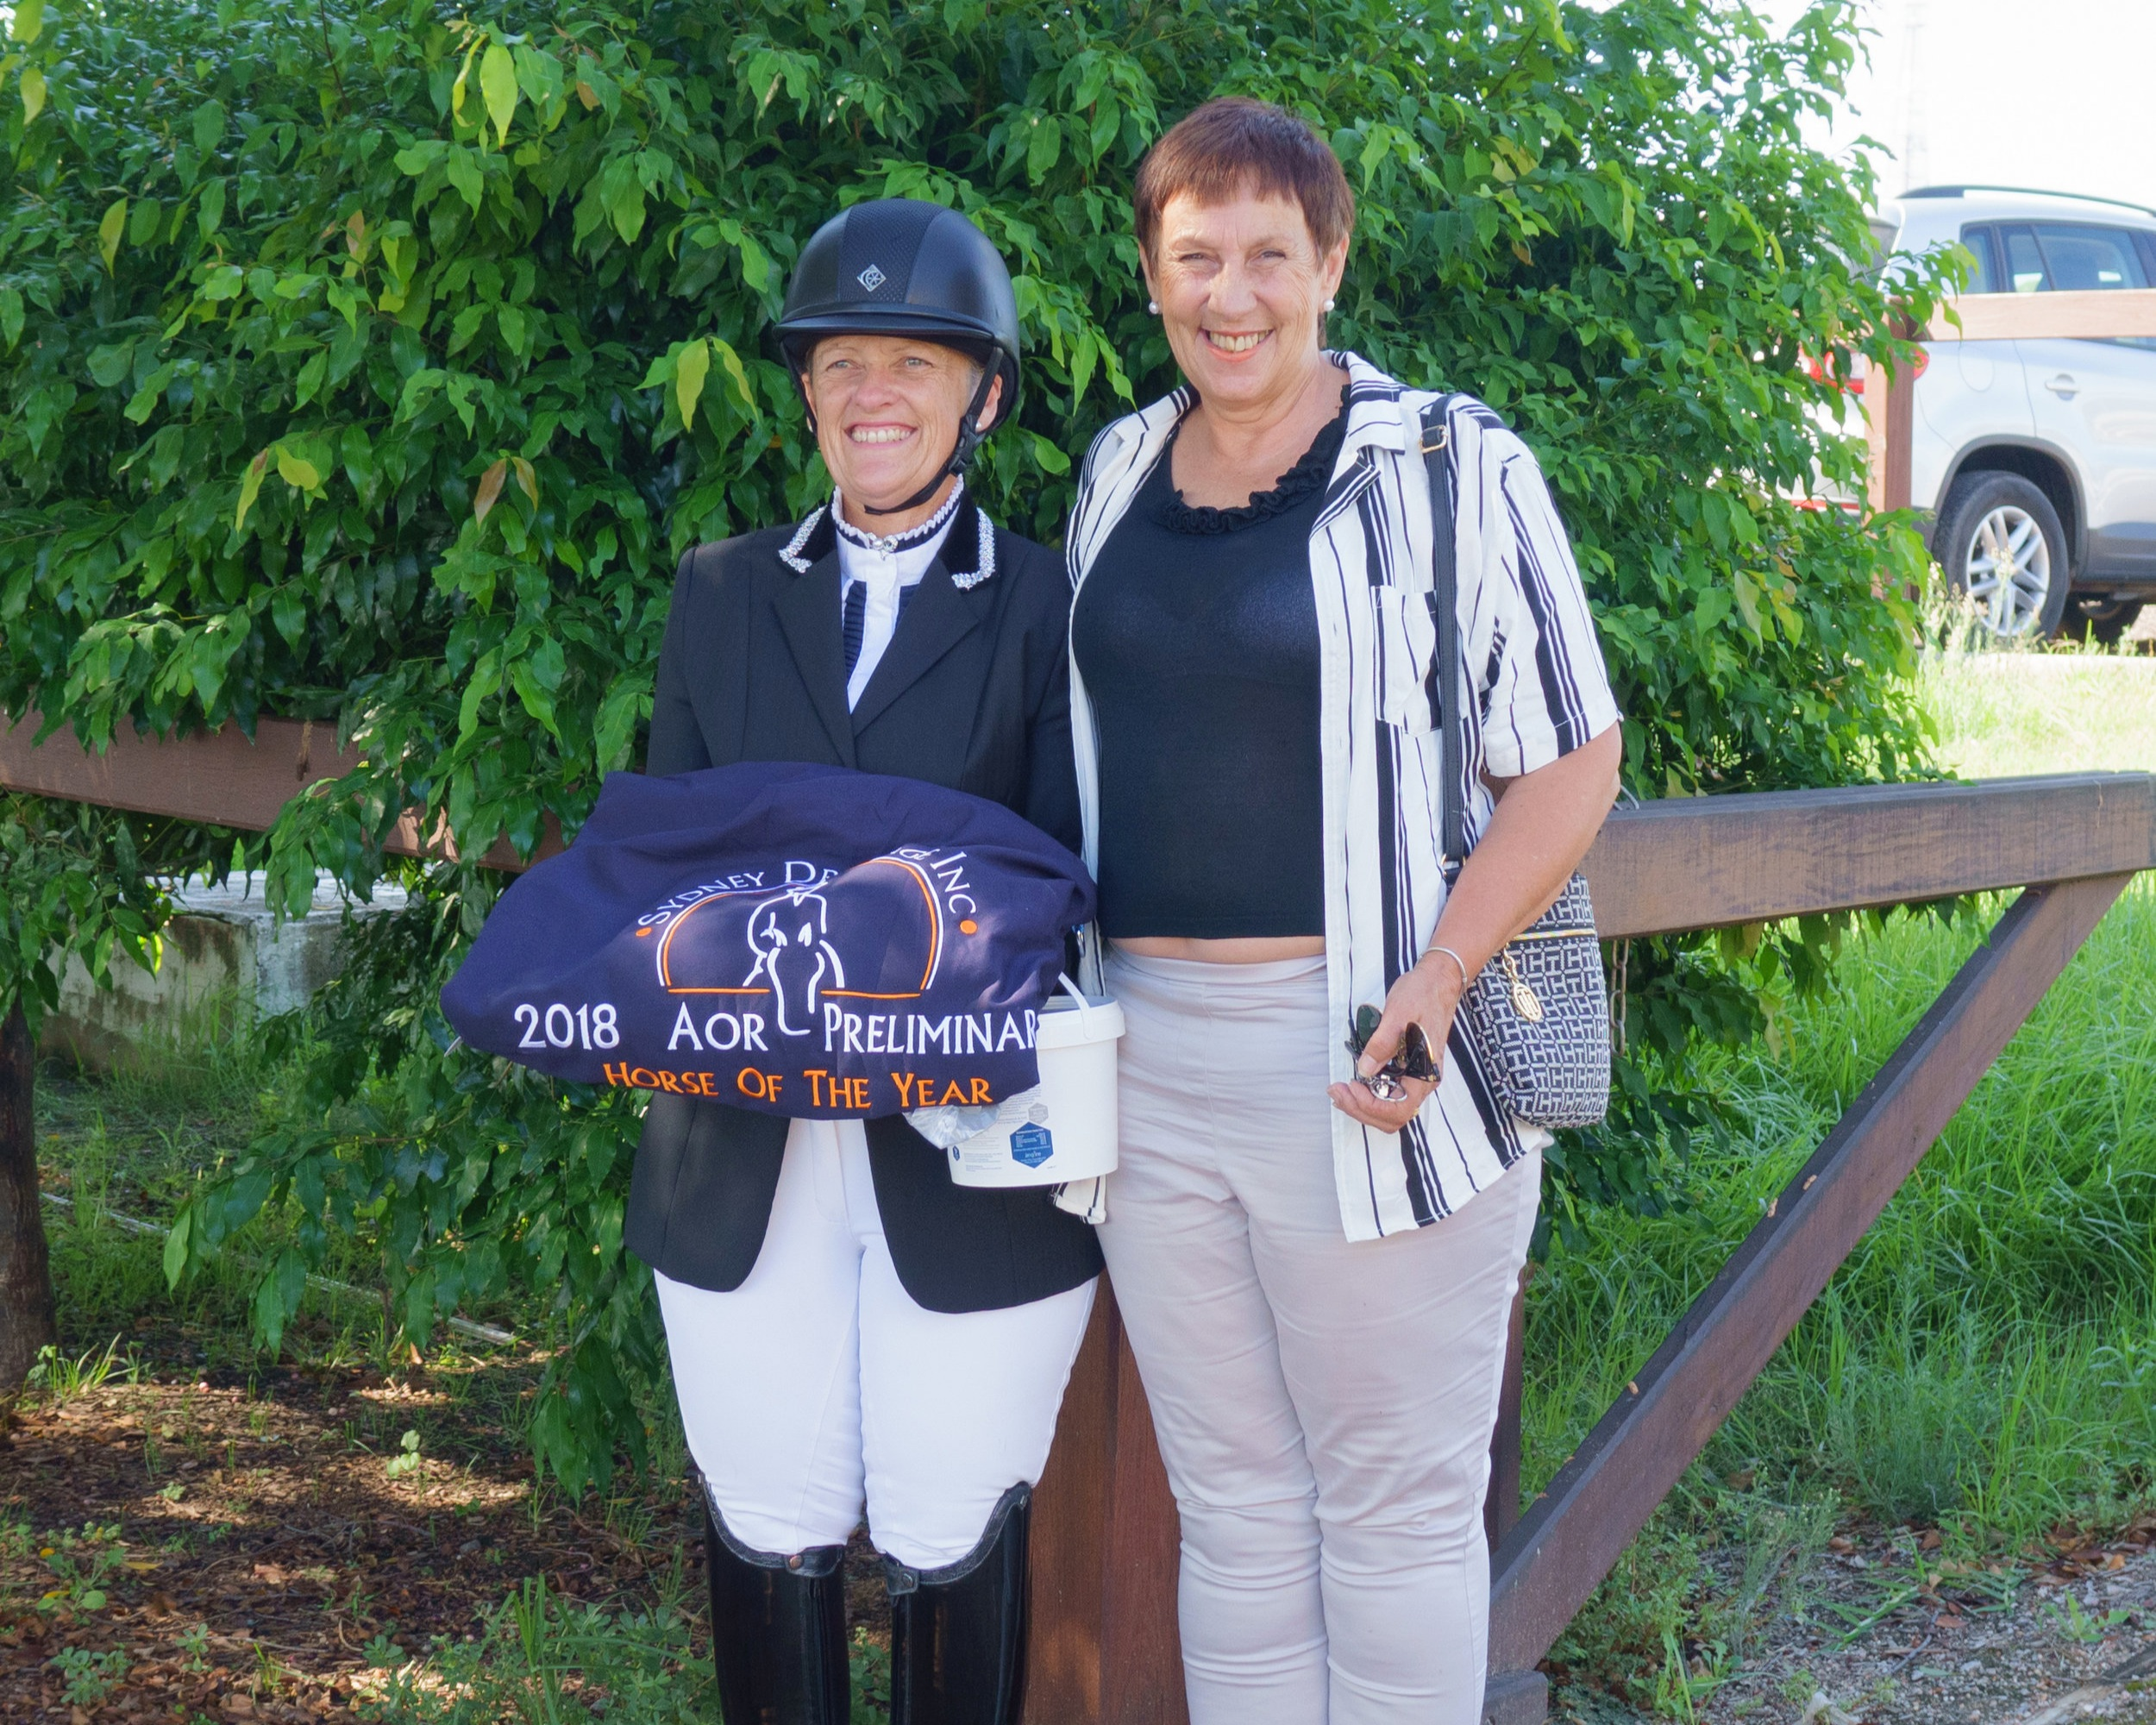 Jennifer wales holding the zilco trophy rug and equestrian news aor prize, photographed with zilco representative kelly king